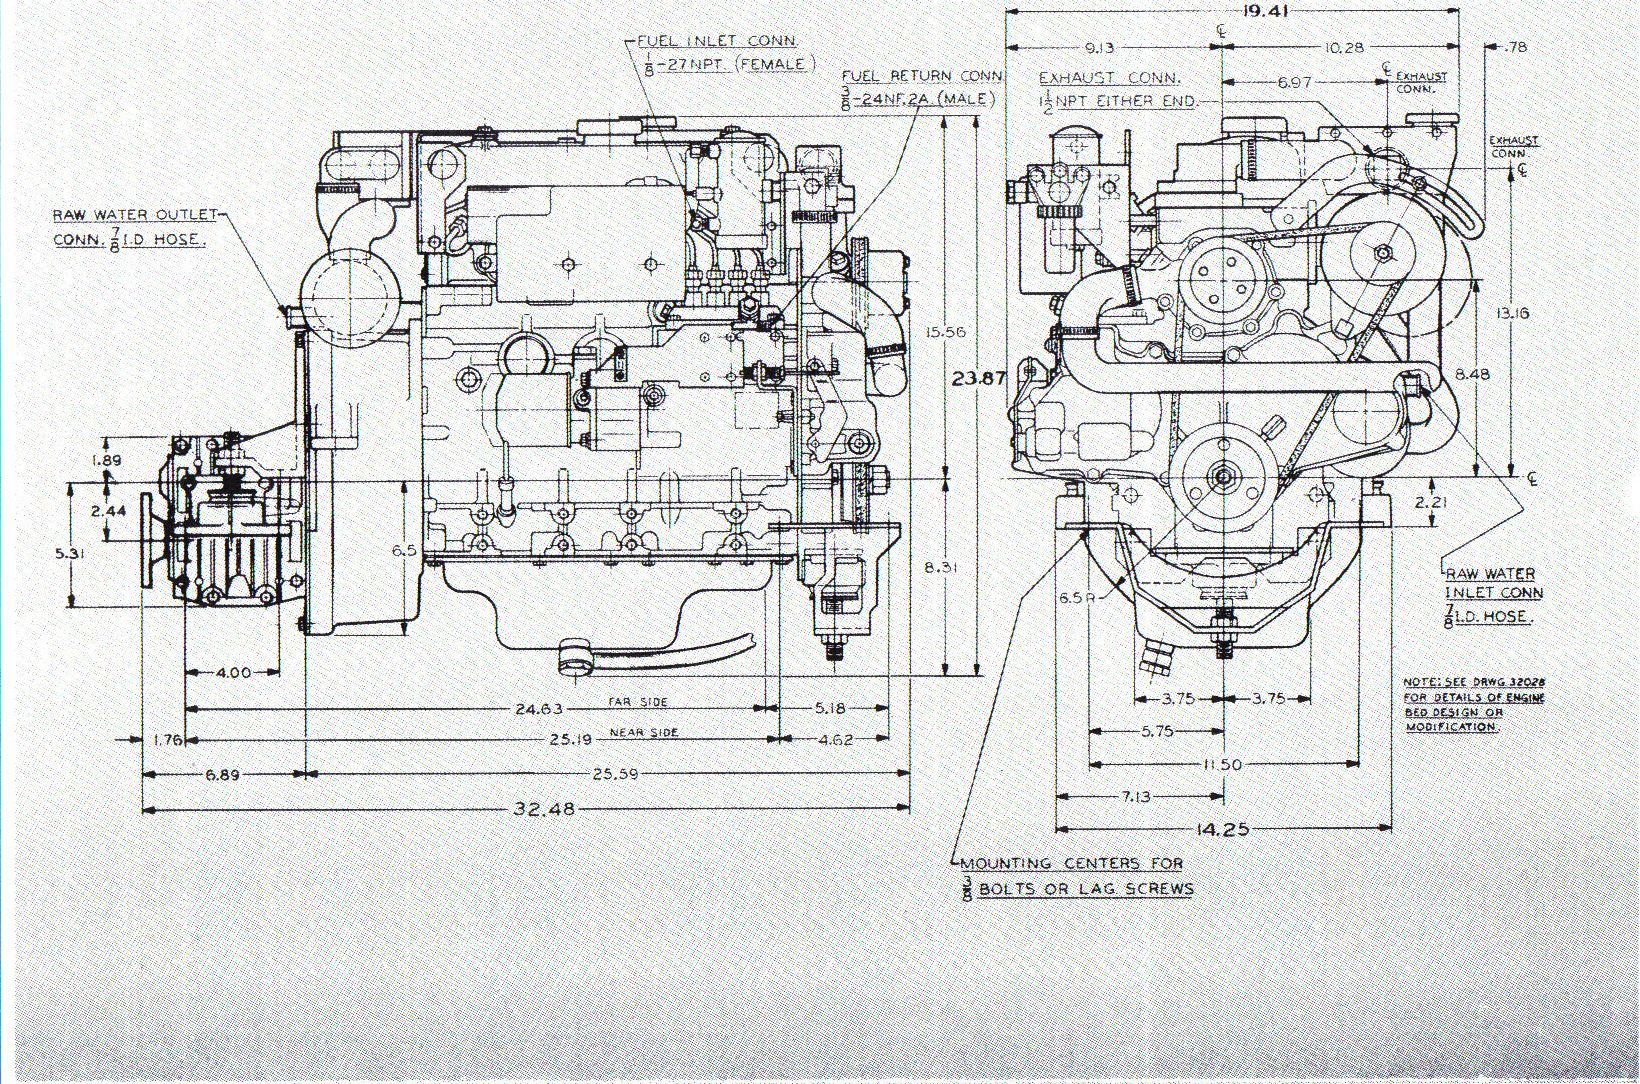 rd80 installation drawing rd 80 westerbeke westerbeke generator wiring diagram at alyssarenee.co